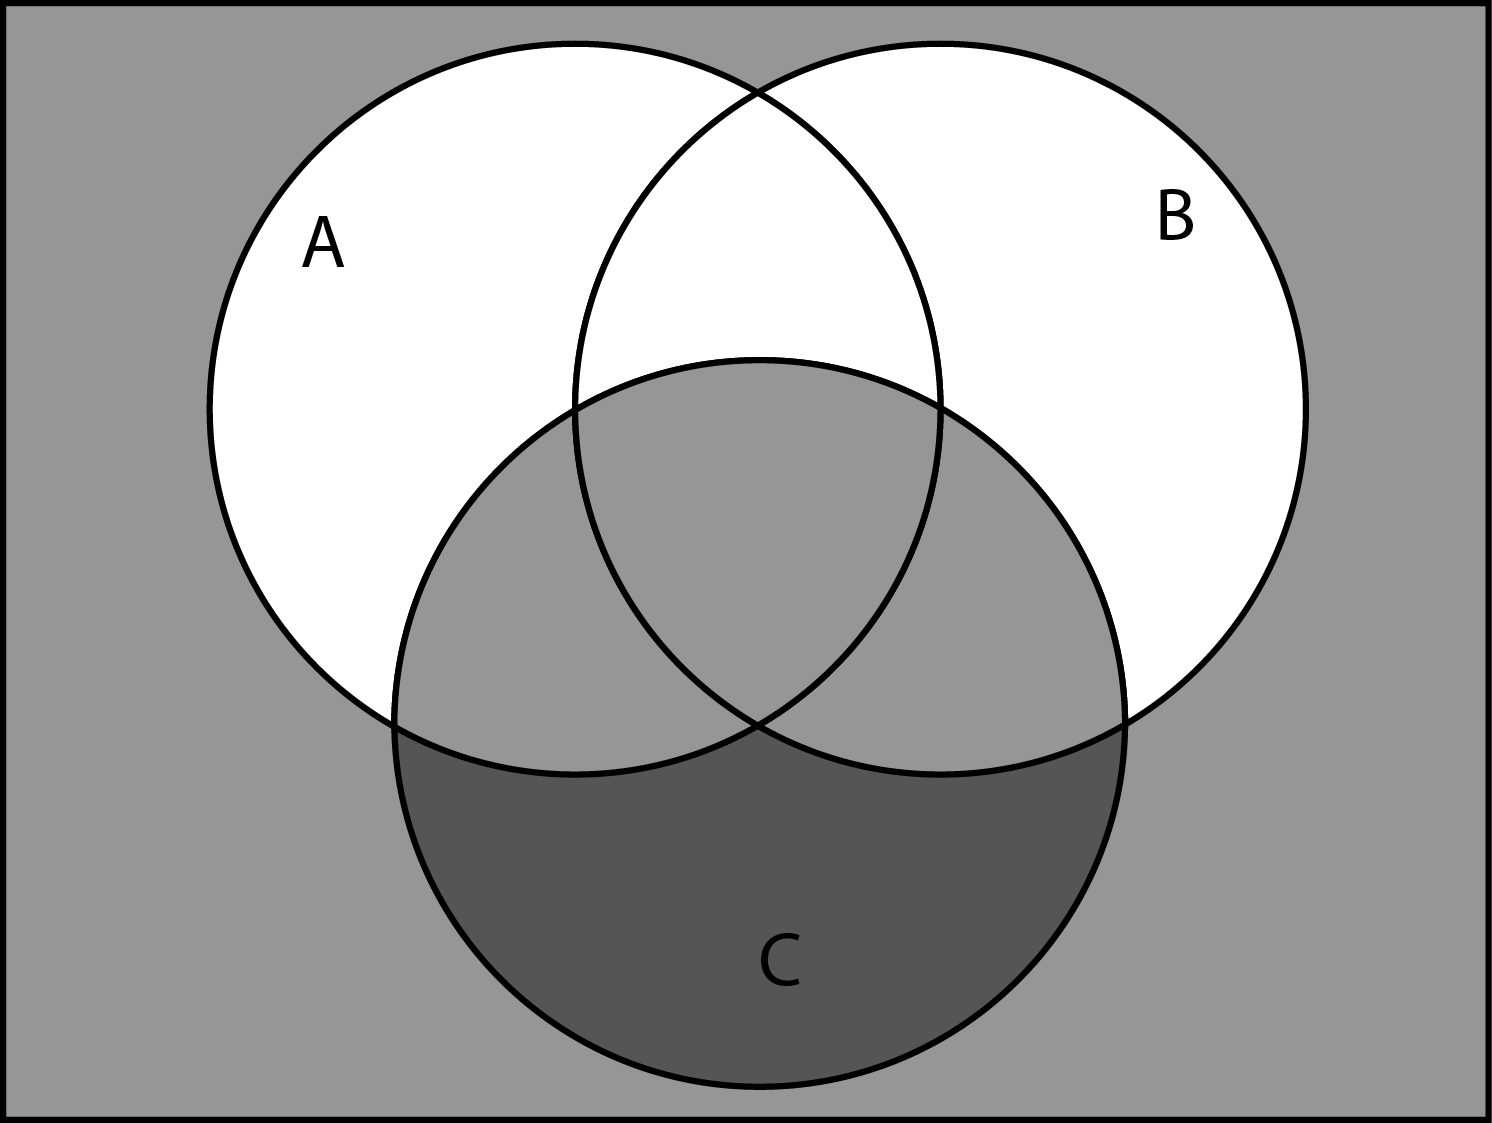 A Union B Venn Diagram